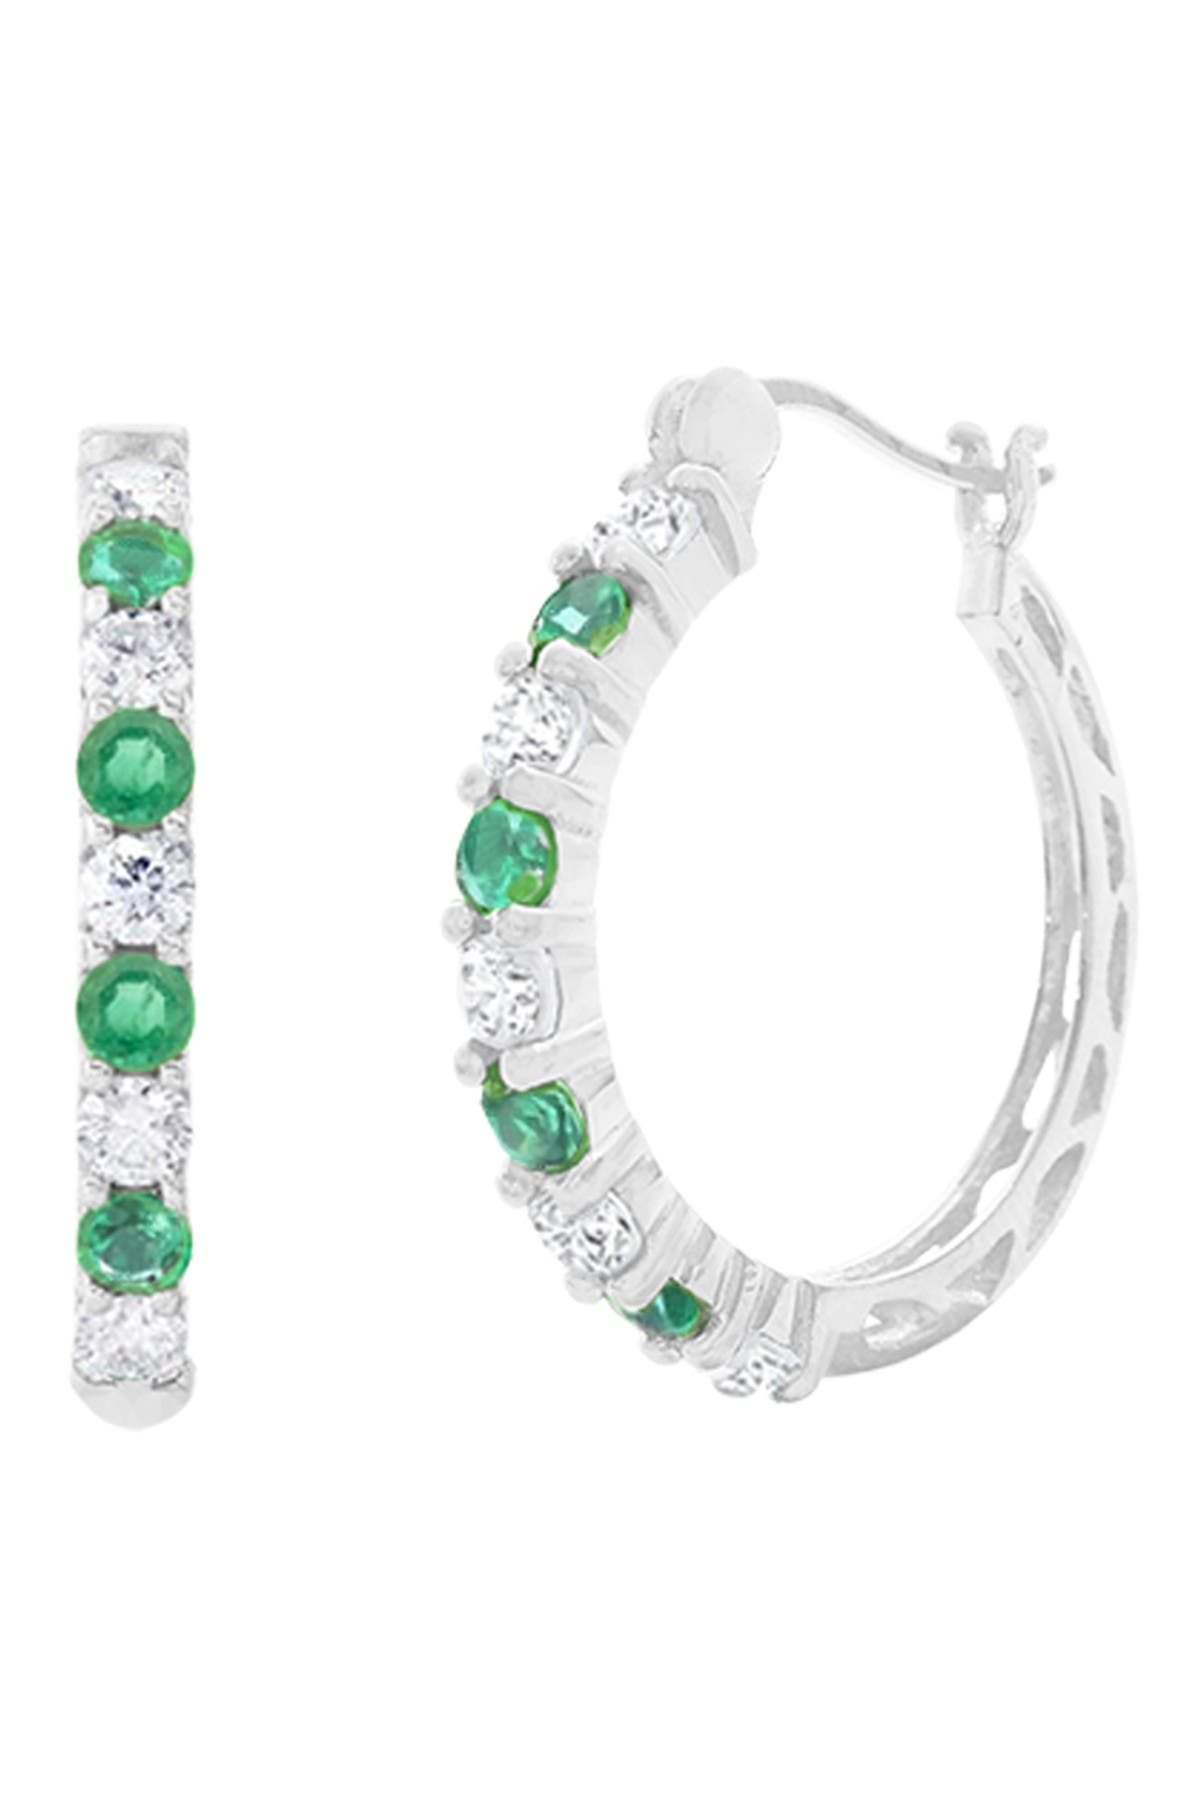 Image of Savvy Cie Sterling Silver Emerald & White Topaz 16mm Hoop Earrings